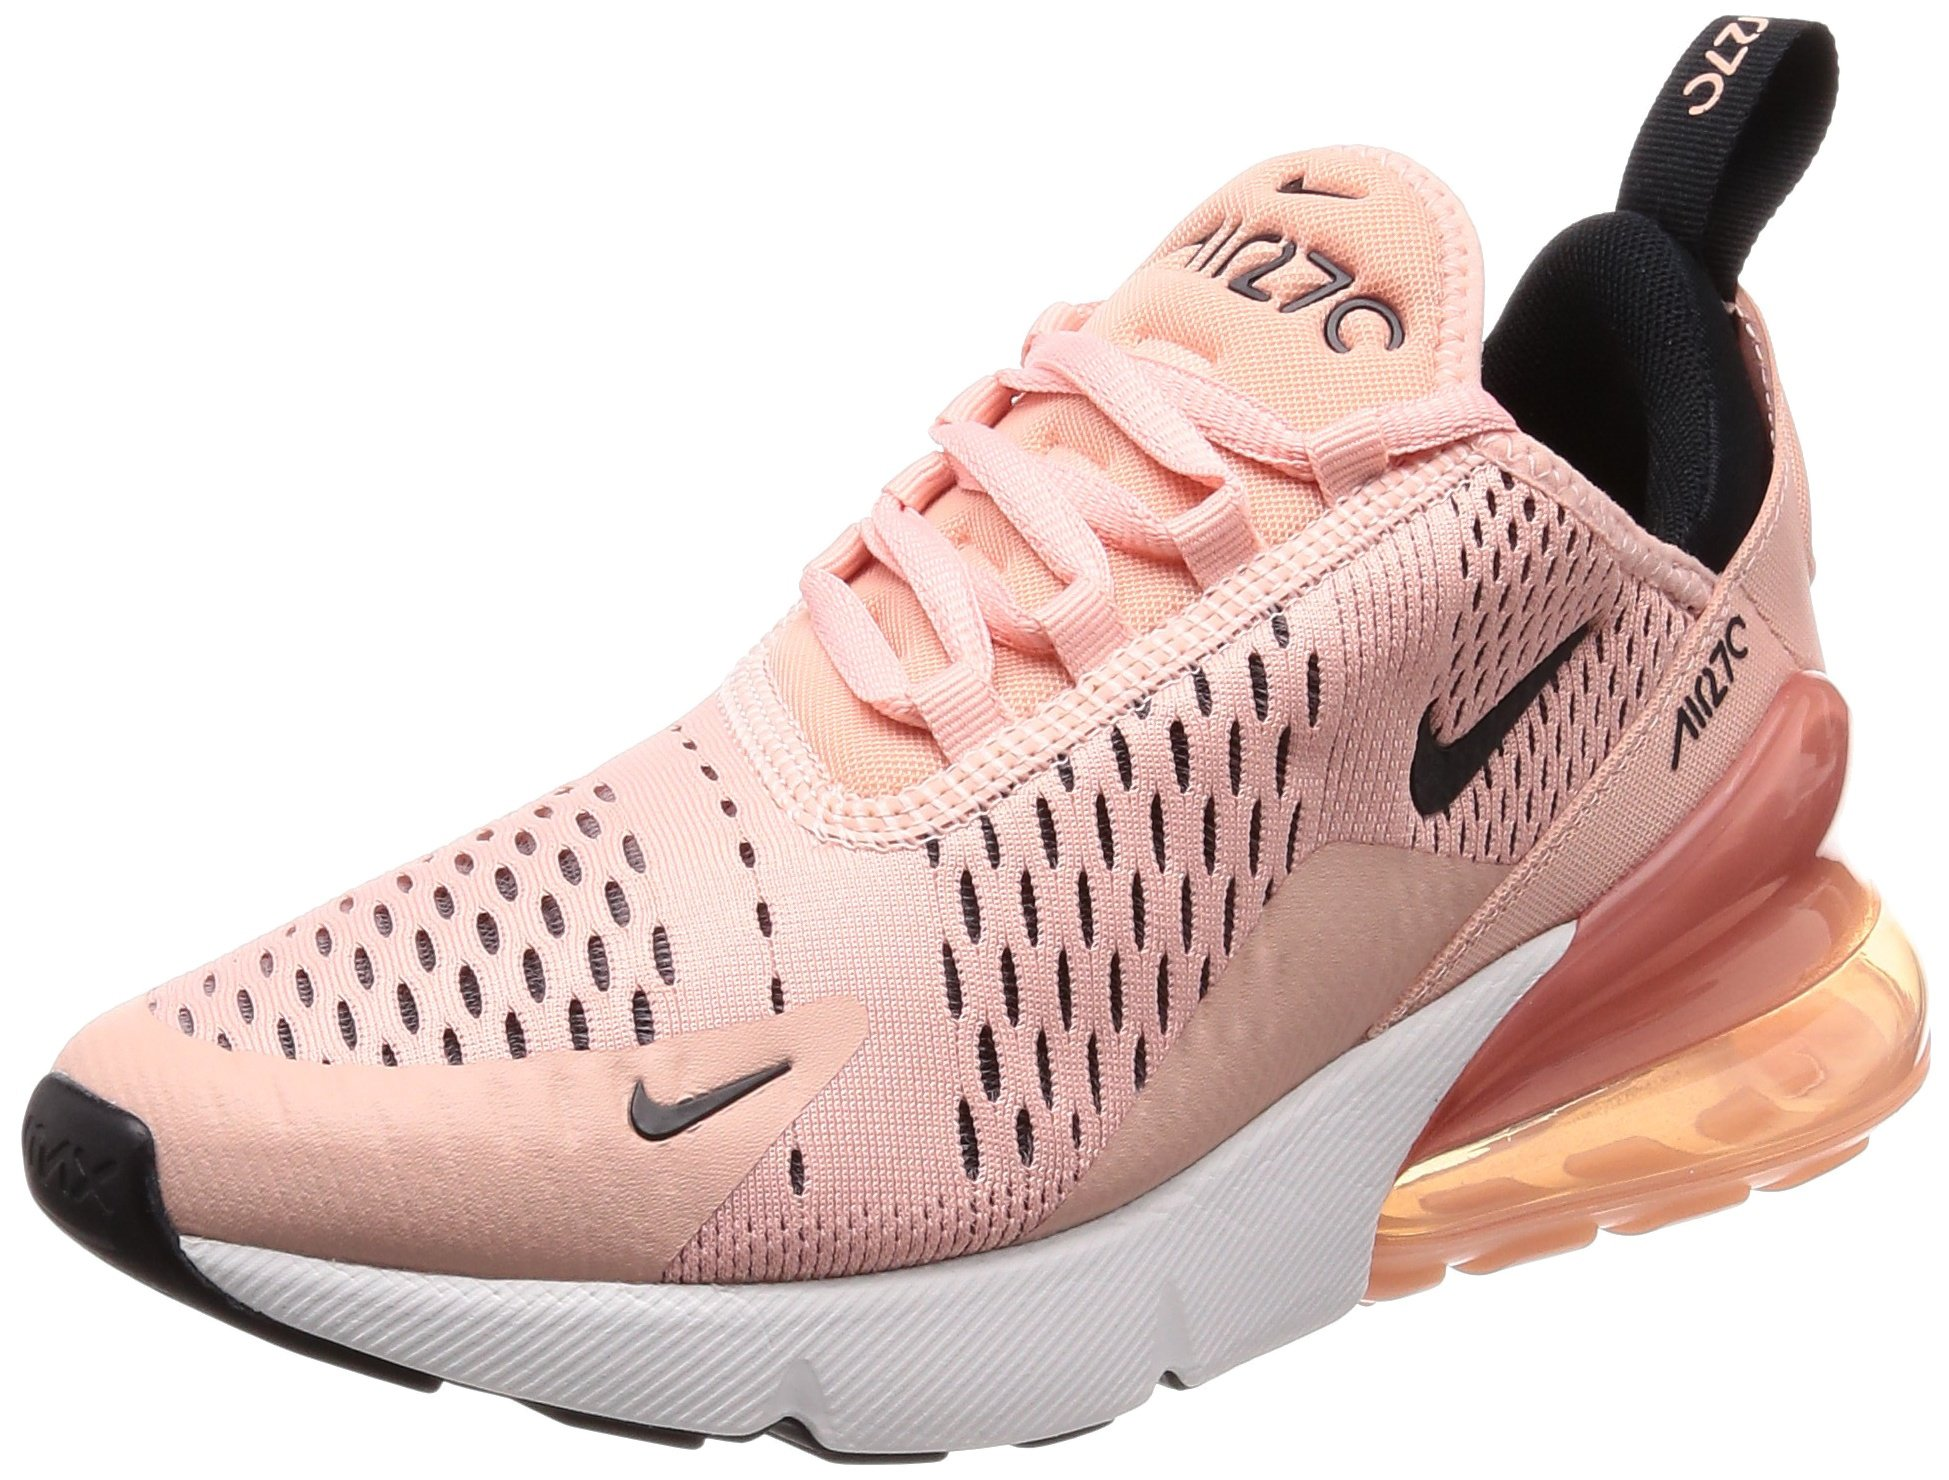 promo code 91d5f a18ce Nike Women's WMNS Air Max 270, Coral Stardust/Black-Summit White, 7 M US